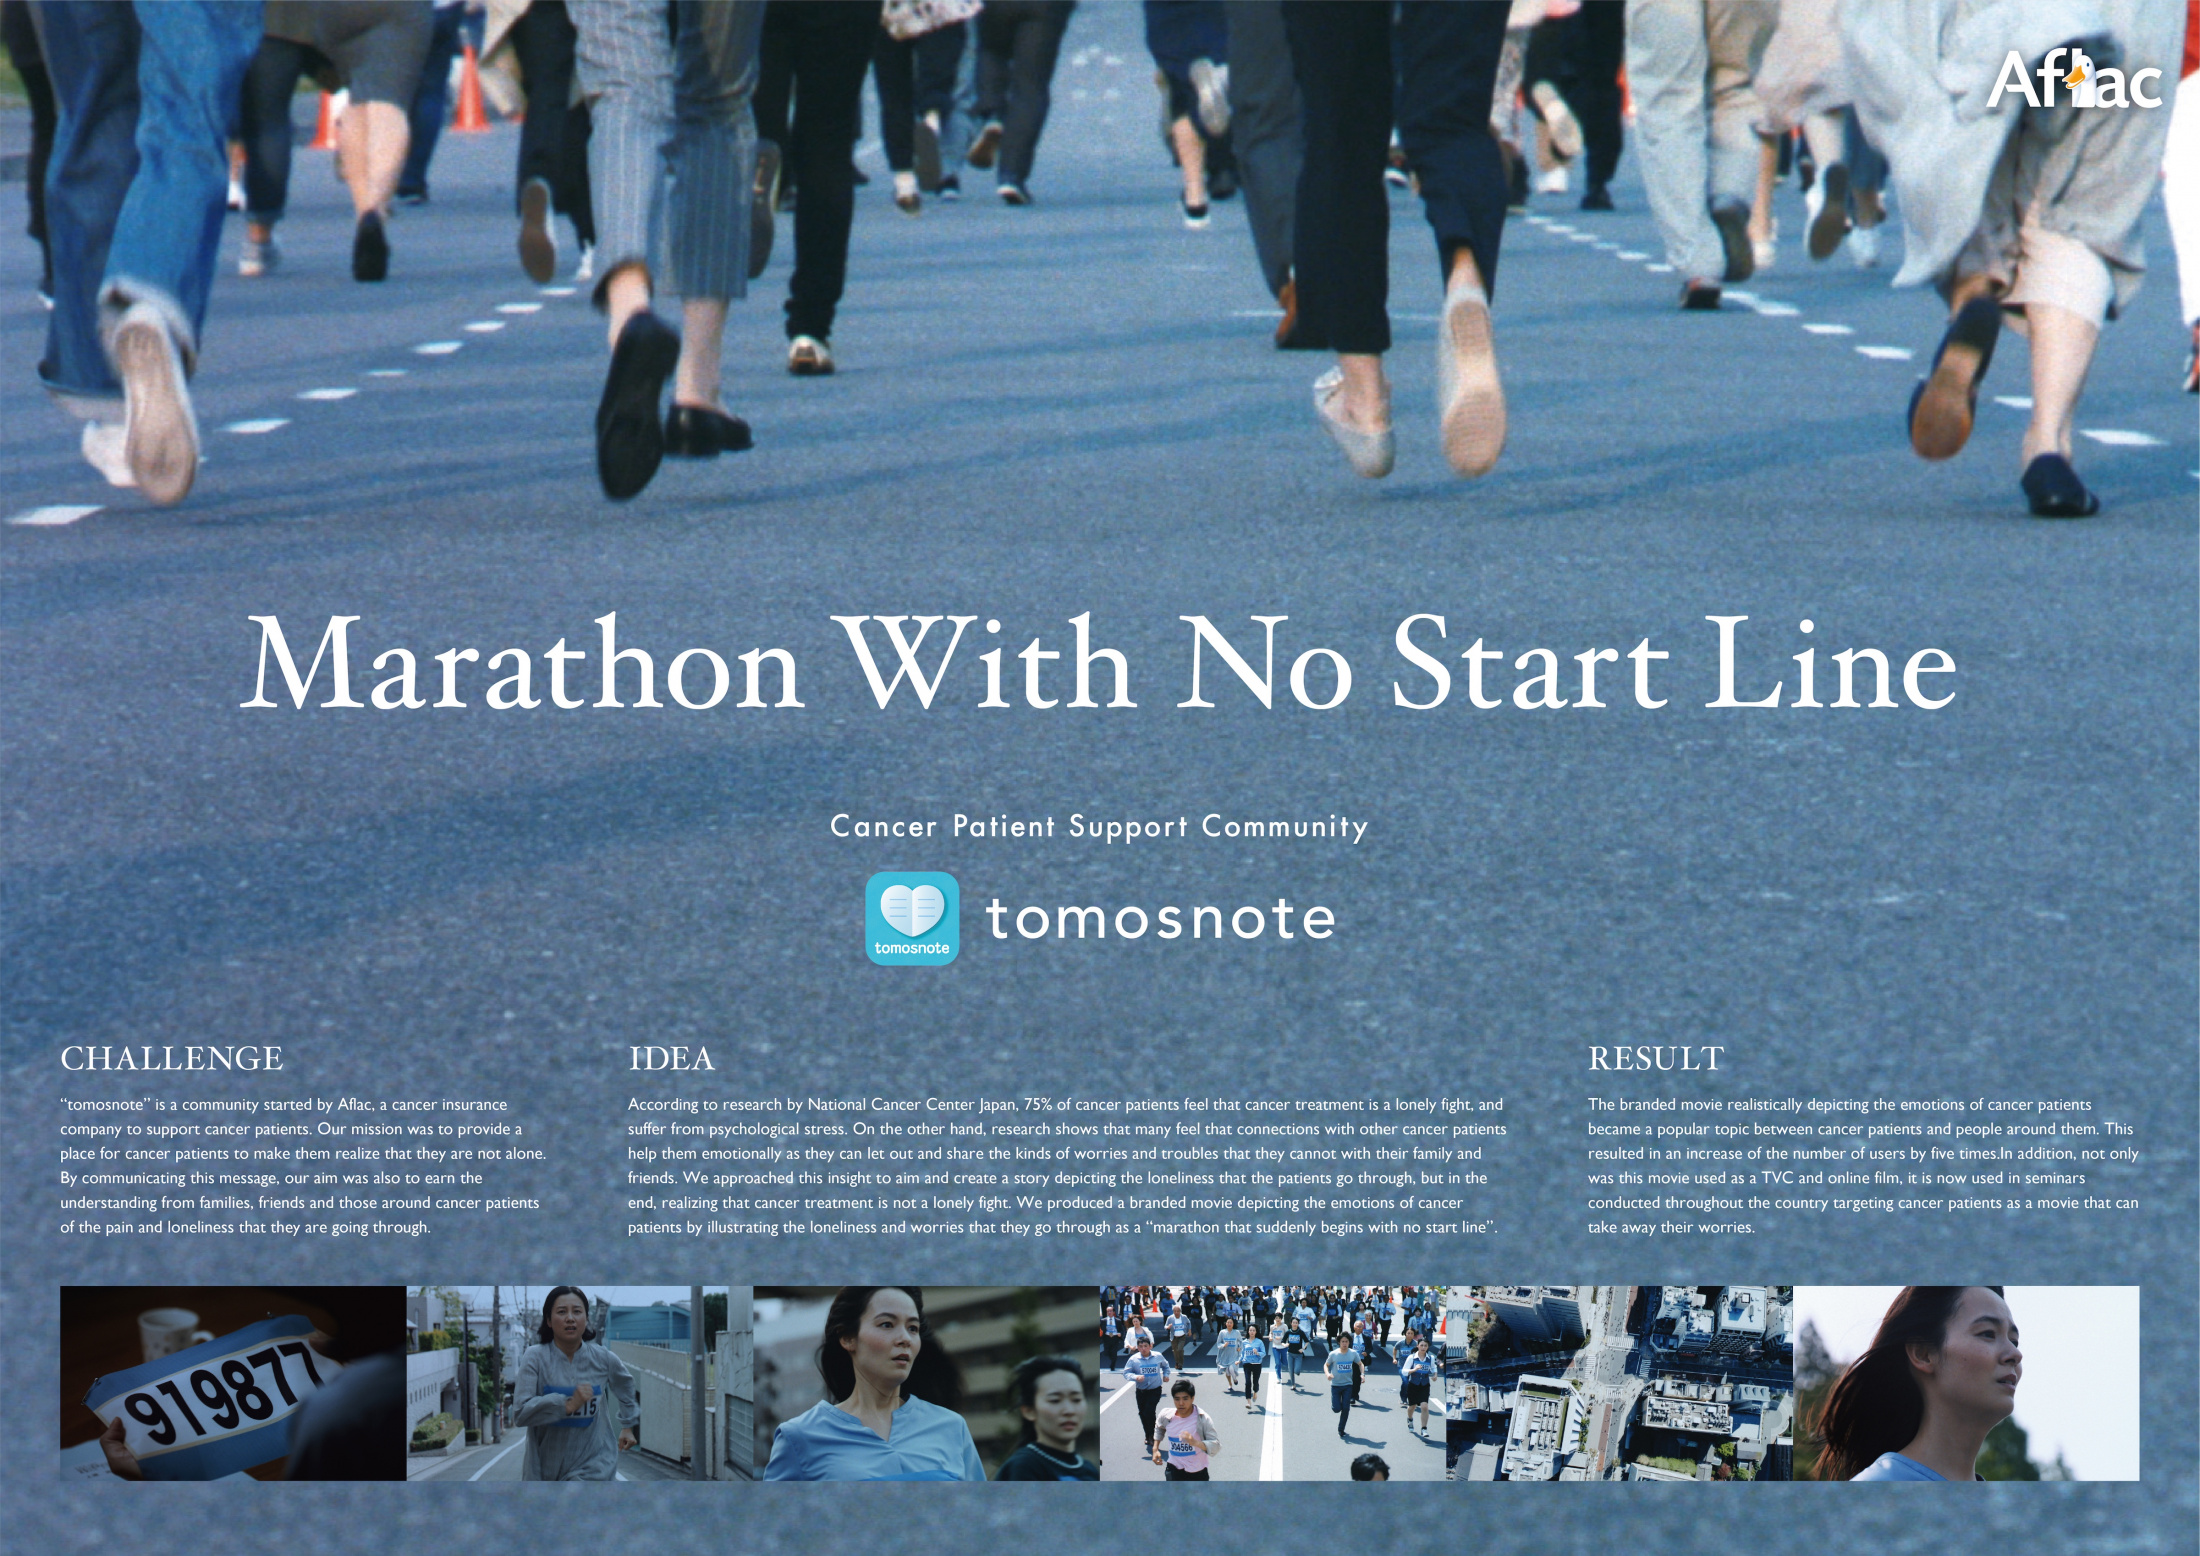 Thumbnail for Marathon With No Start Line